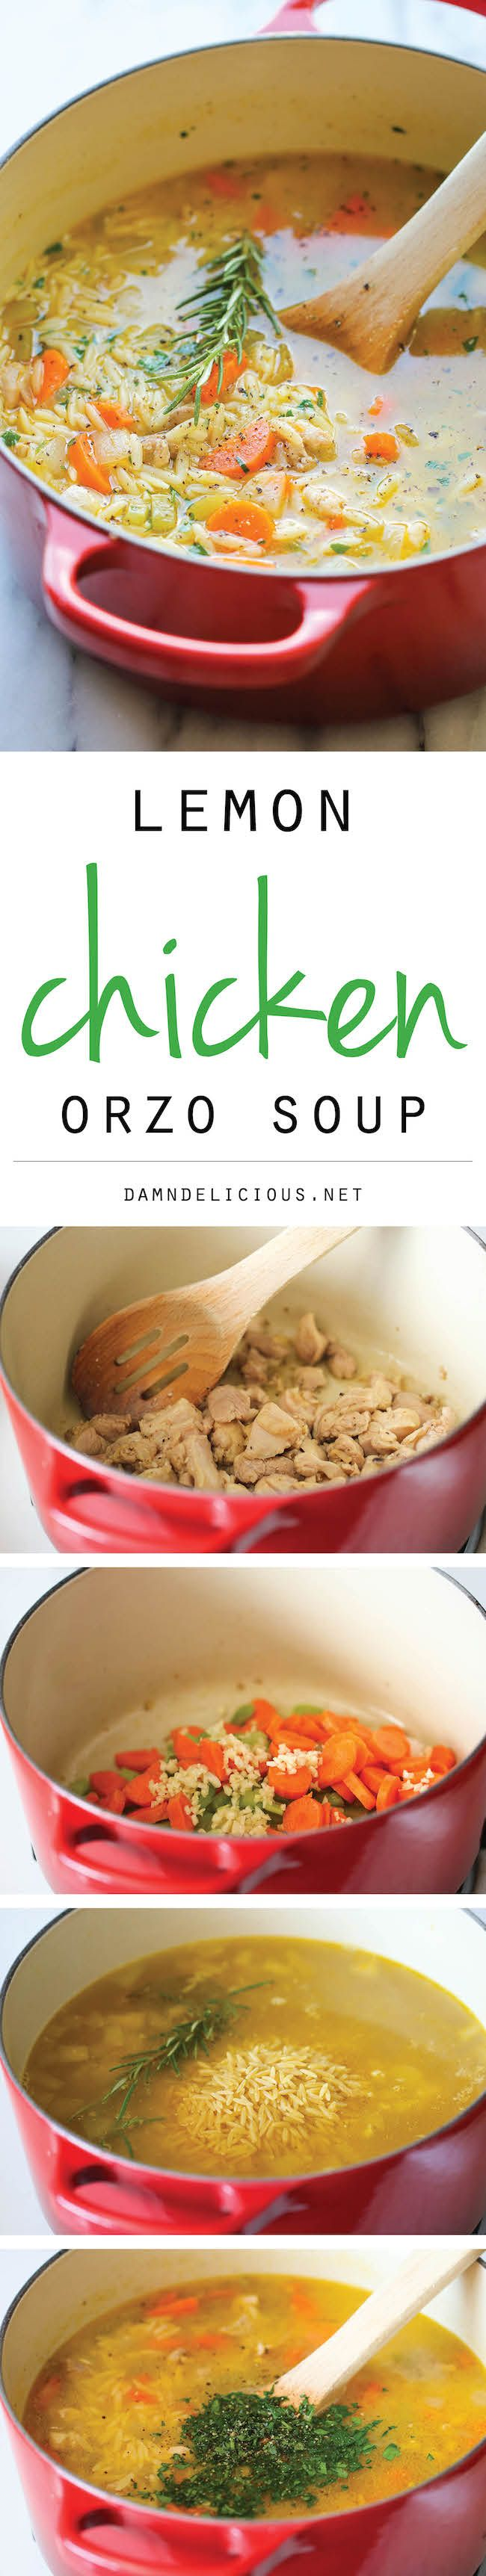 Lemon Chicken Orzo Soup - Chockfull of hearty veggies and tender ...